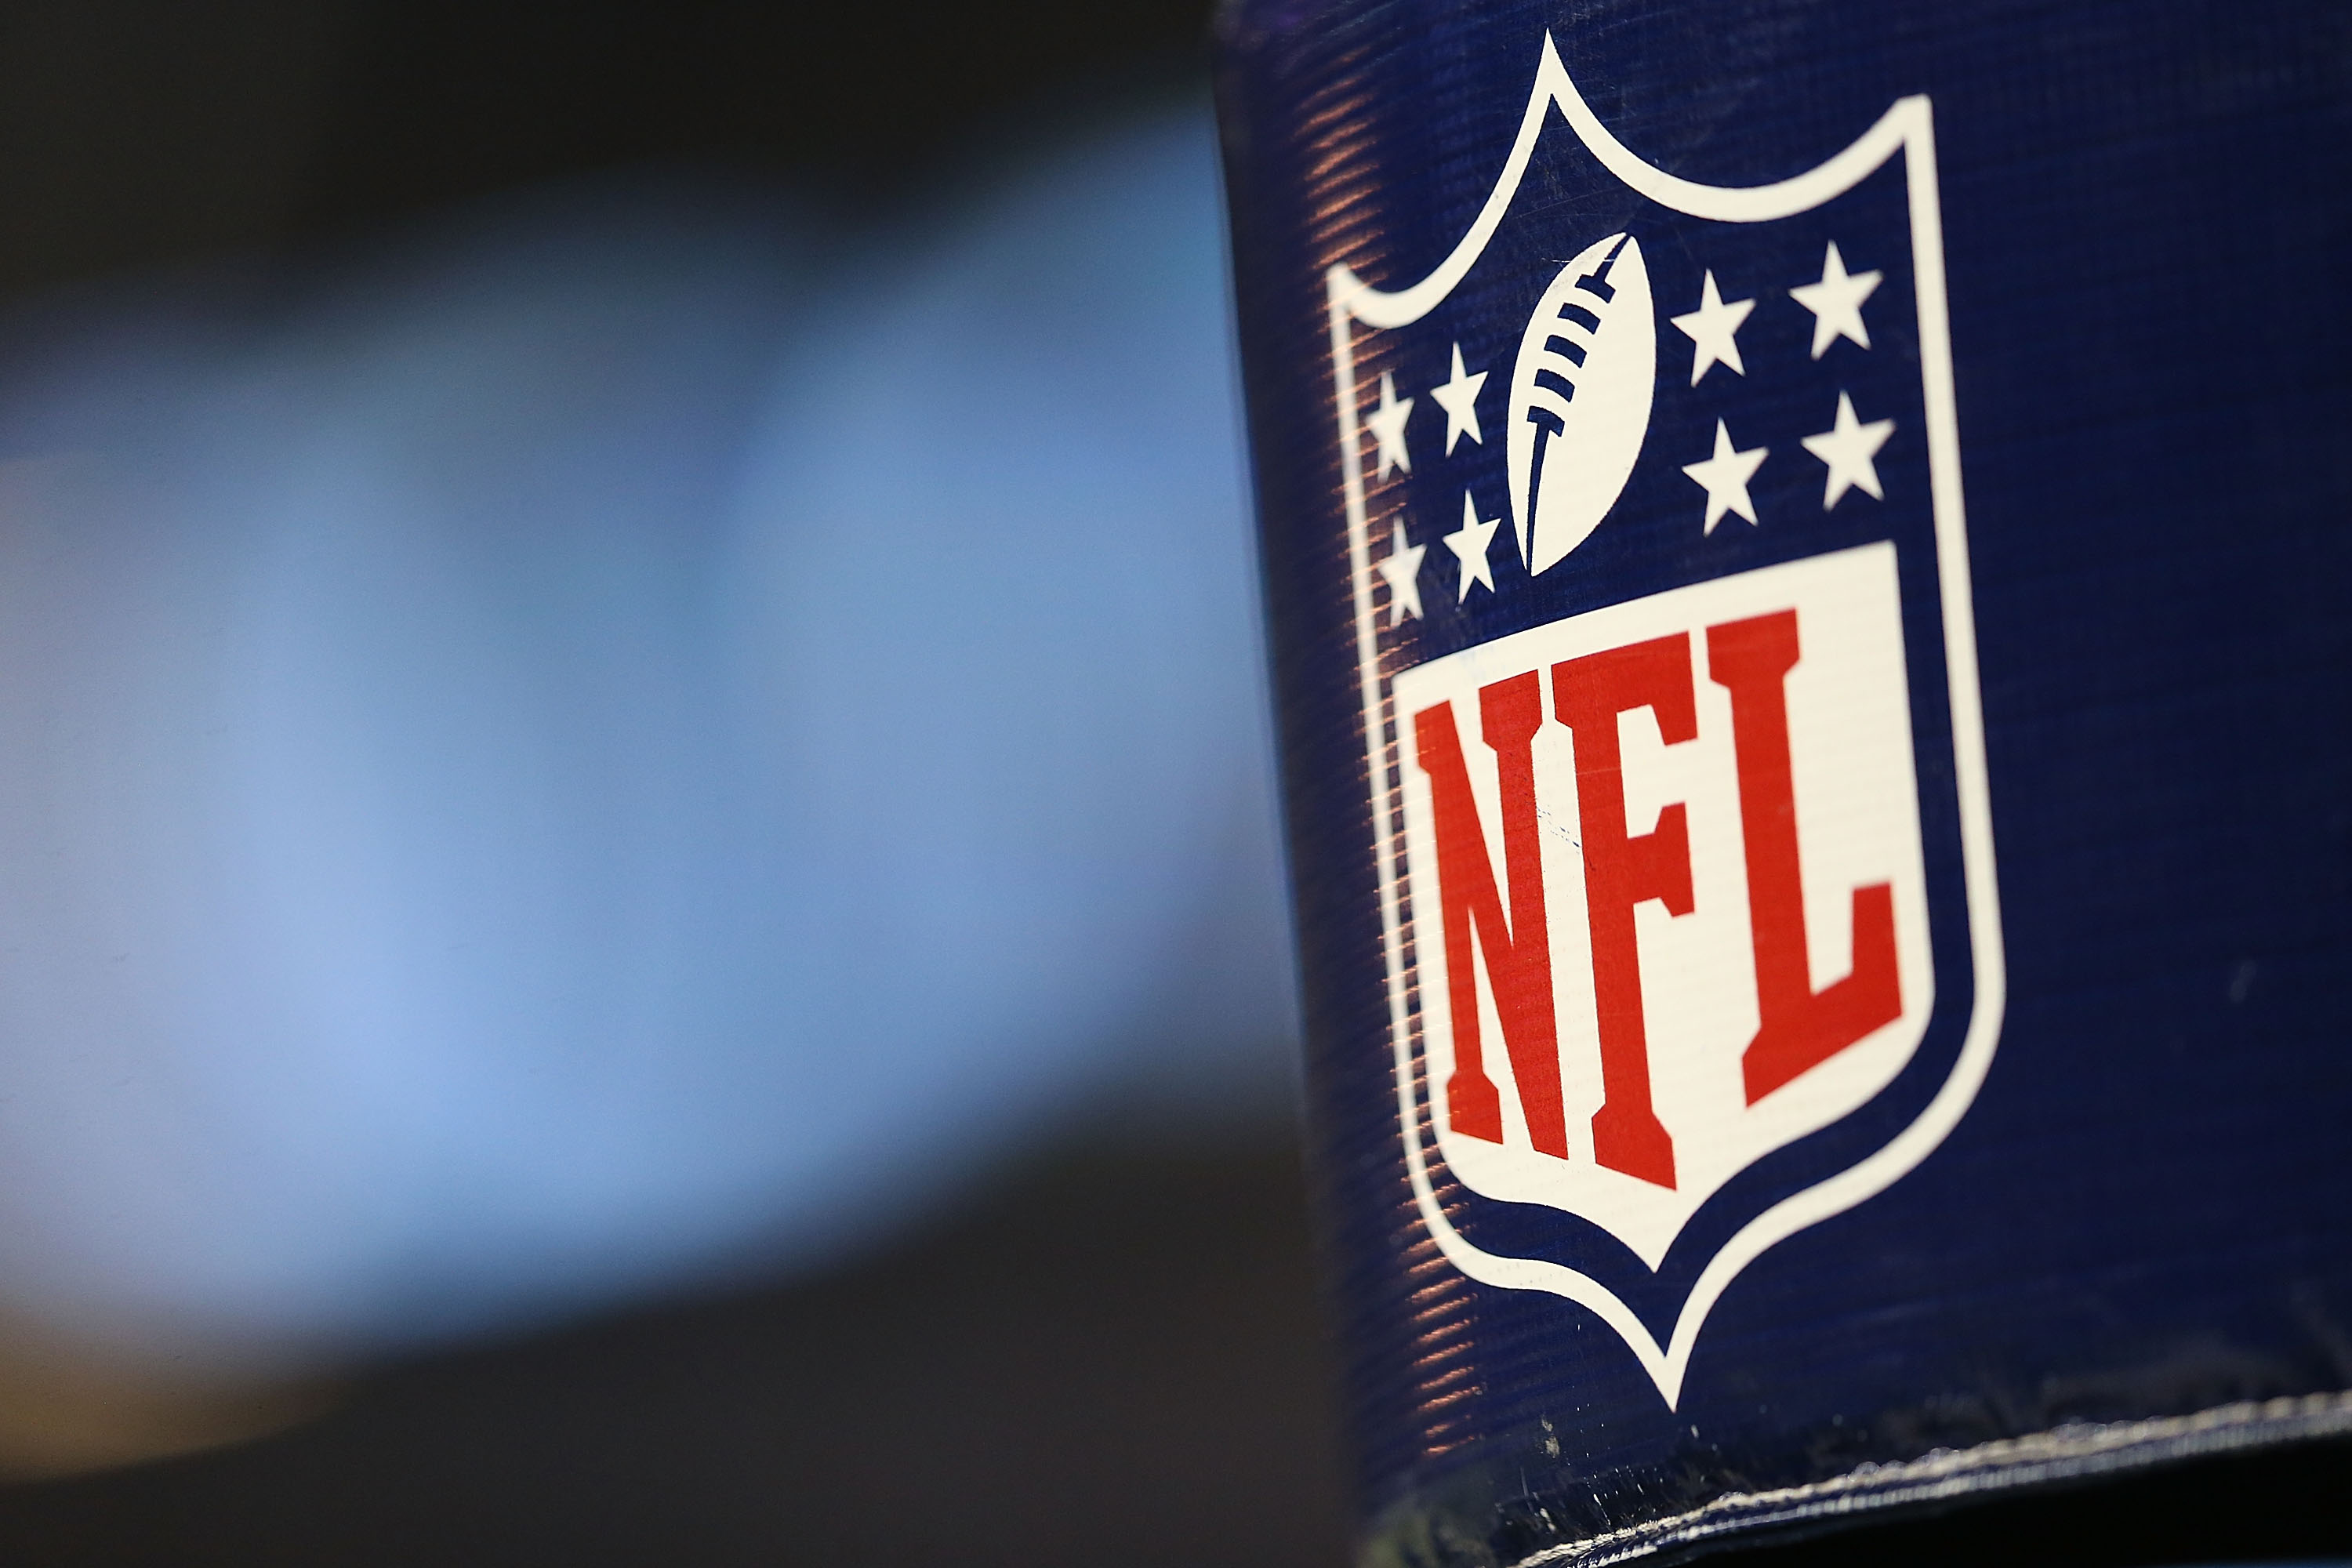 The NFL Logo at Ford Field in Detroit, Michigan on Aug. 22, 2014.